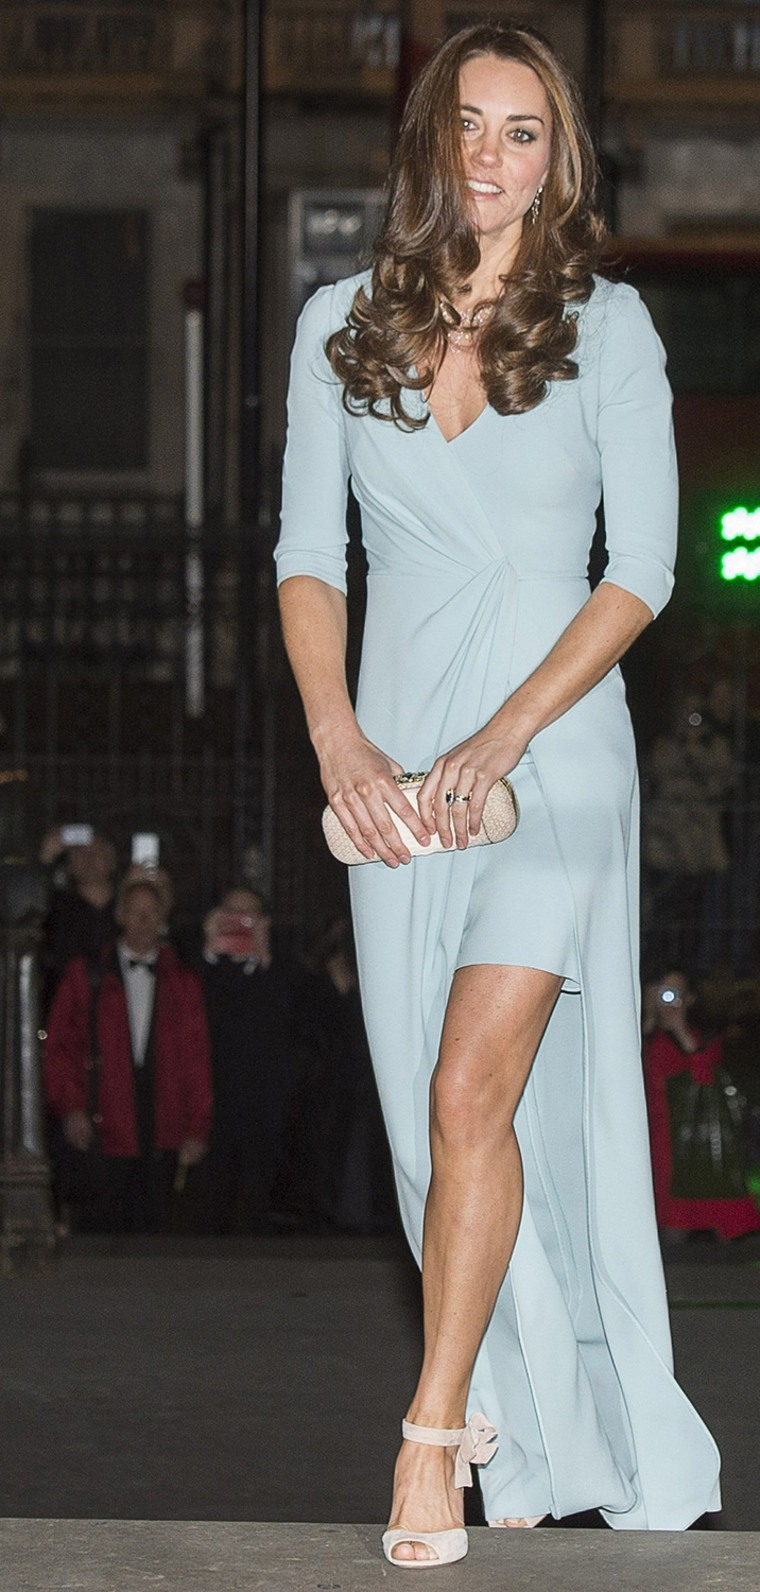 Image: Britain's Catherine, Duchess of Cambridge, attends the Wildlife Photographer of the Year 2014 Awards Ceremony at the Natural History Museum in London